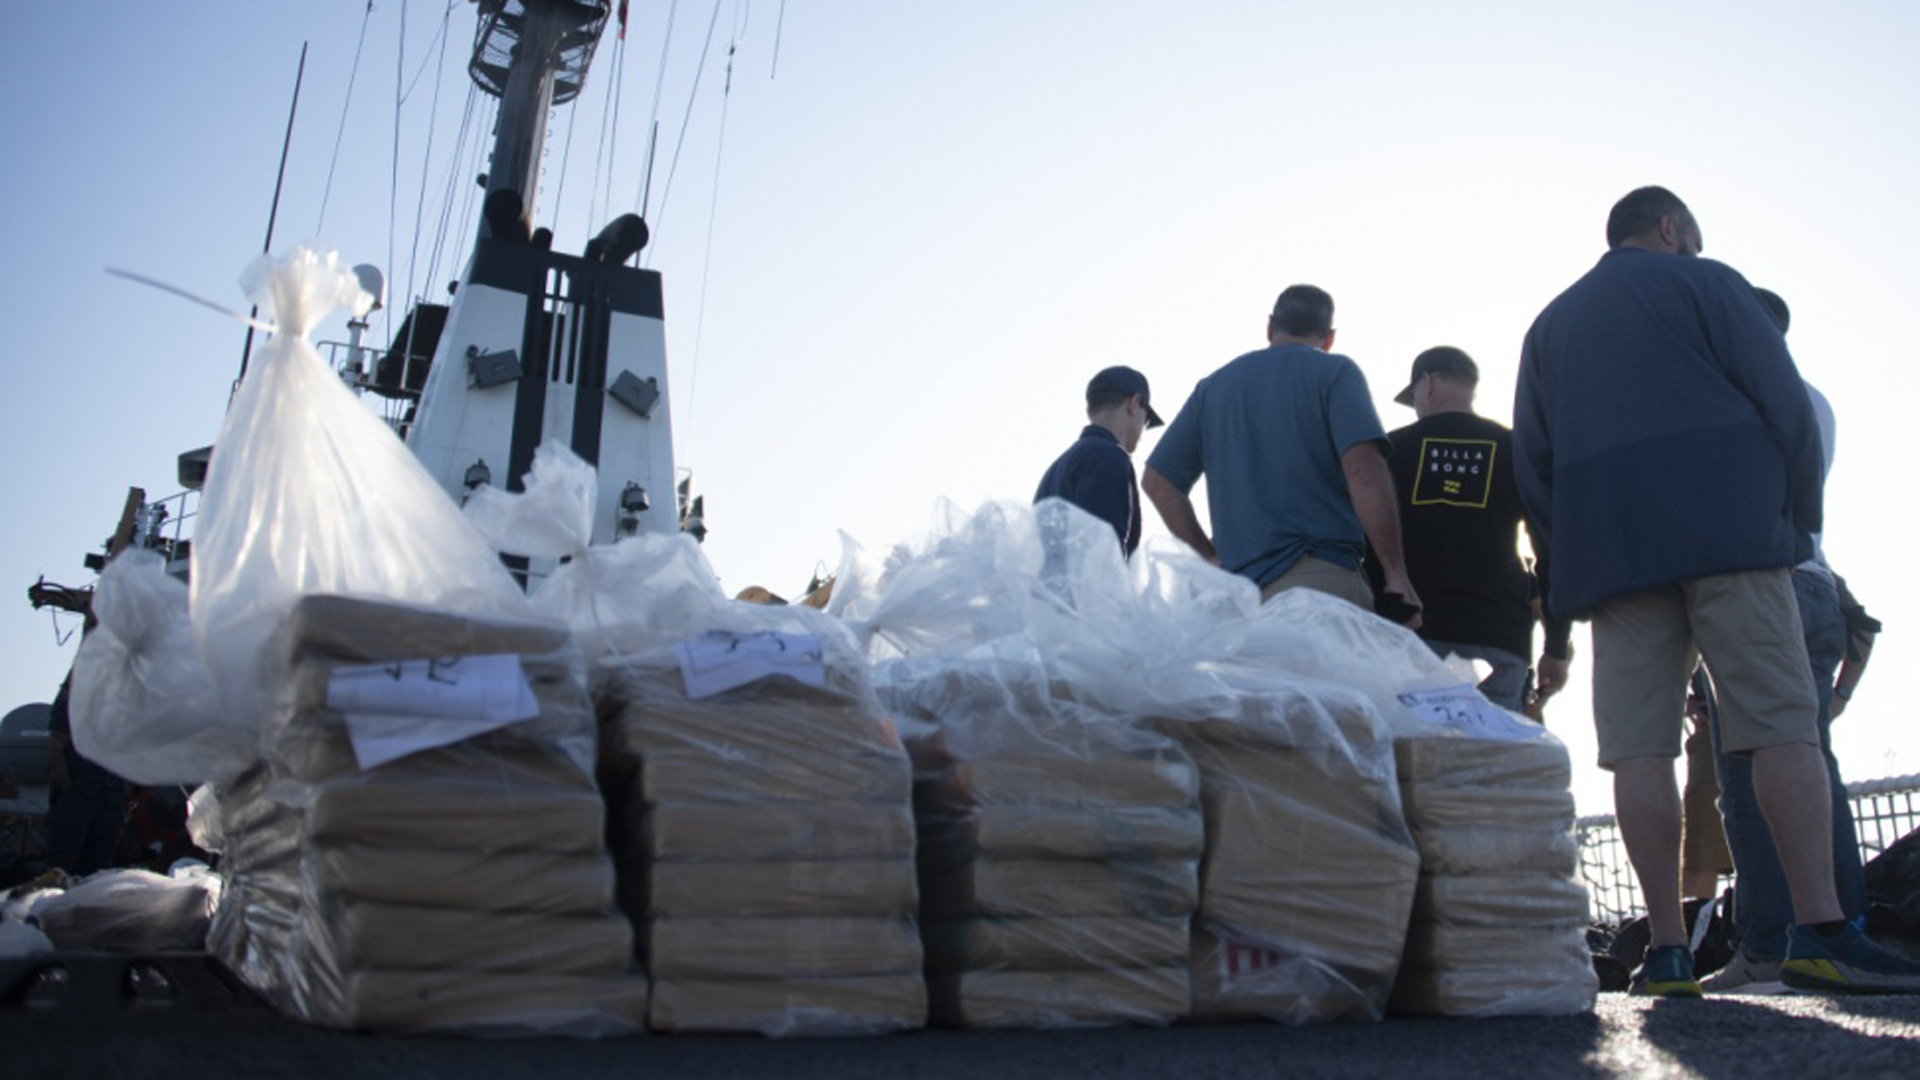 Stacks of packaged cocaine seized by federal authorities in the eastern Pacific Ocean appear in a photo released by the U.S. Coast Guard on Oct. 16, 2019.